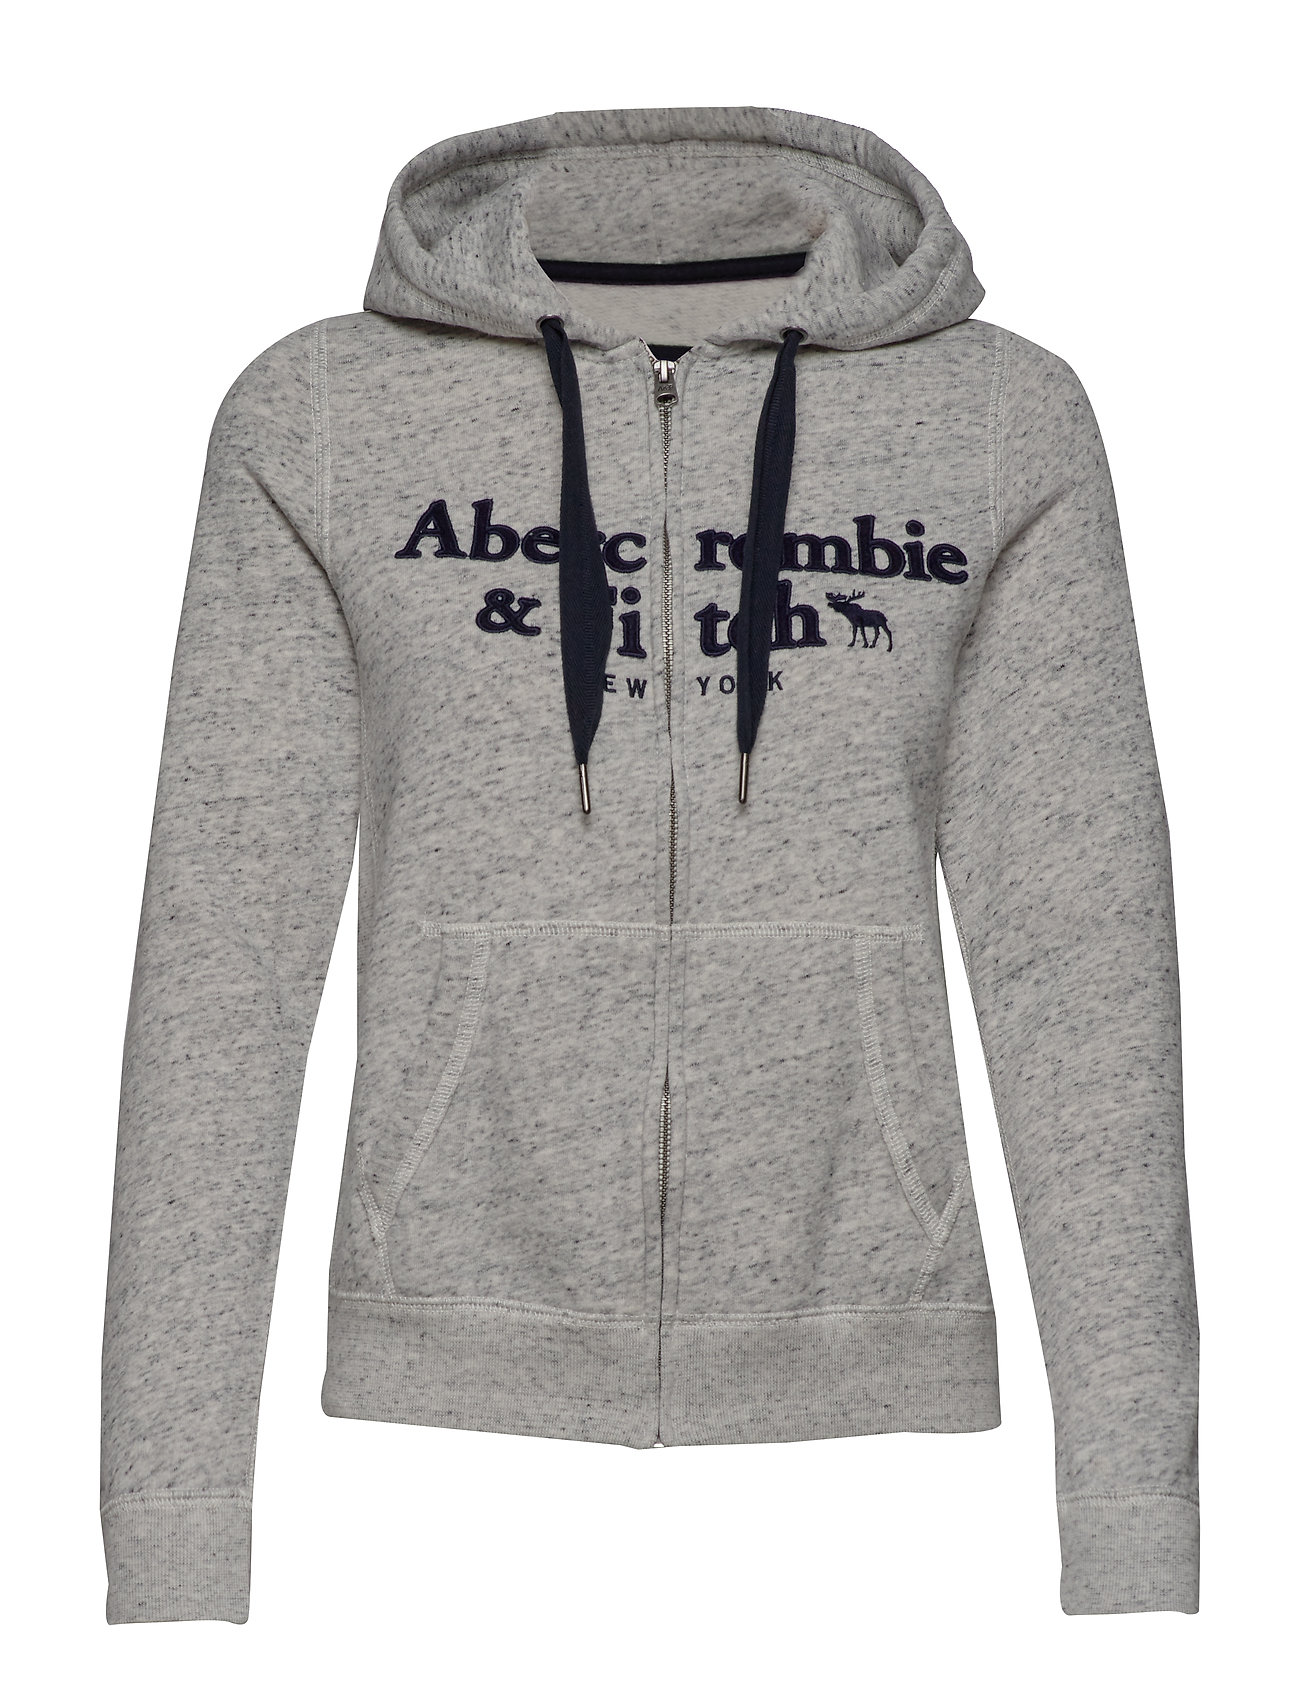 Abercrombie & Fitch Classic Logo Full-Zip - LIGHT GREY SD/TEXTURE